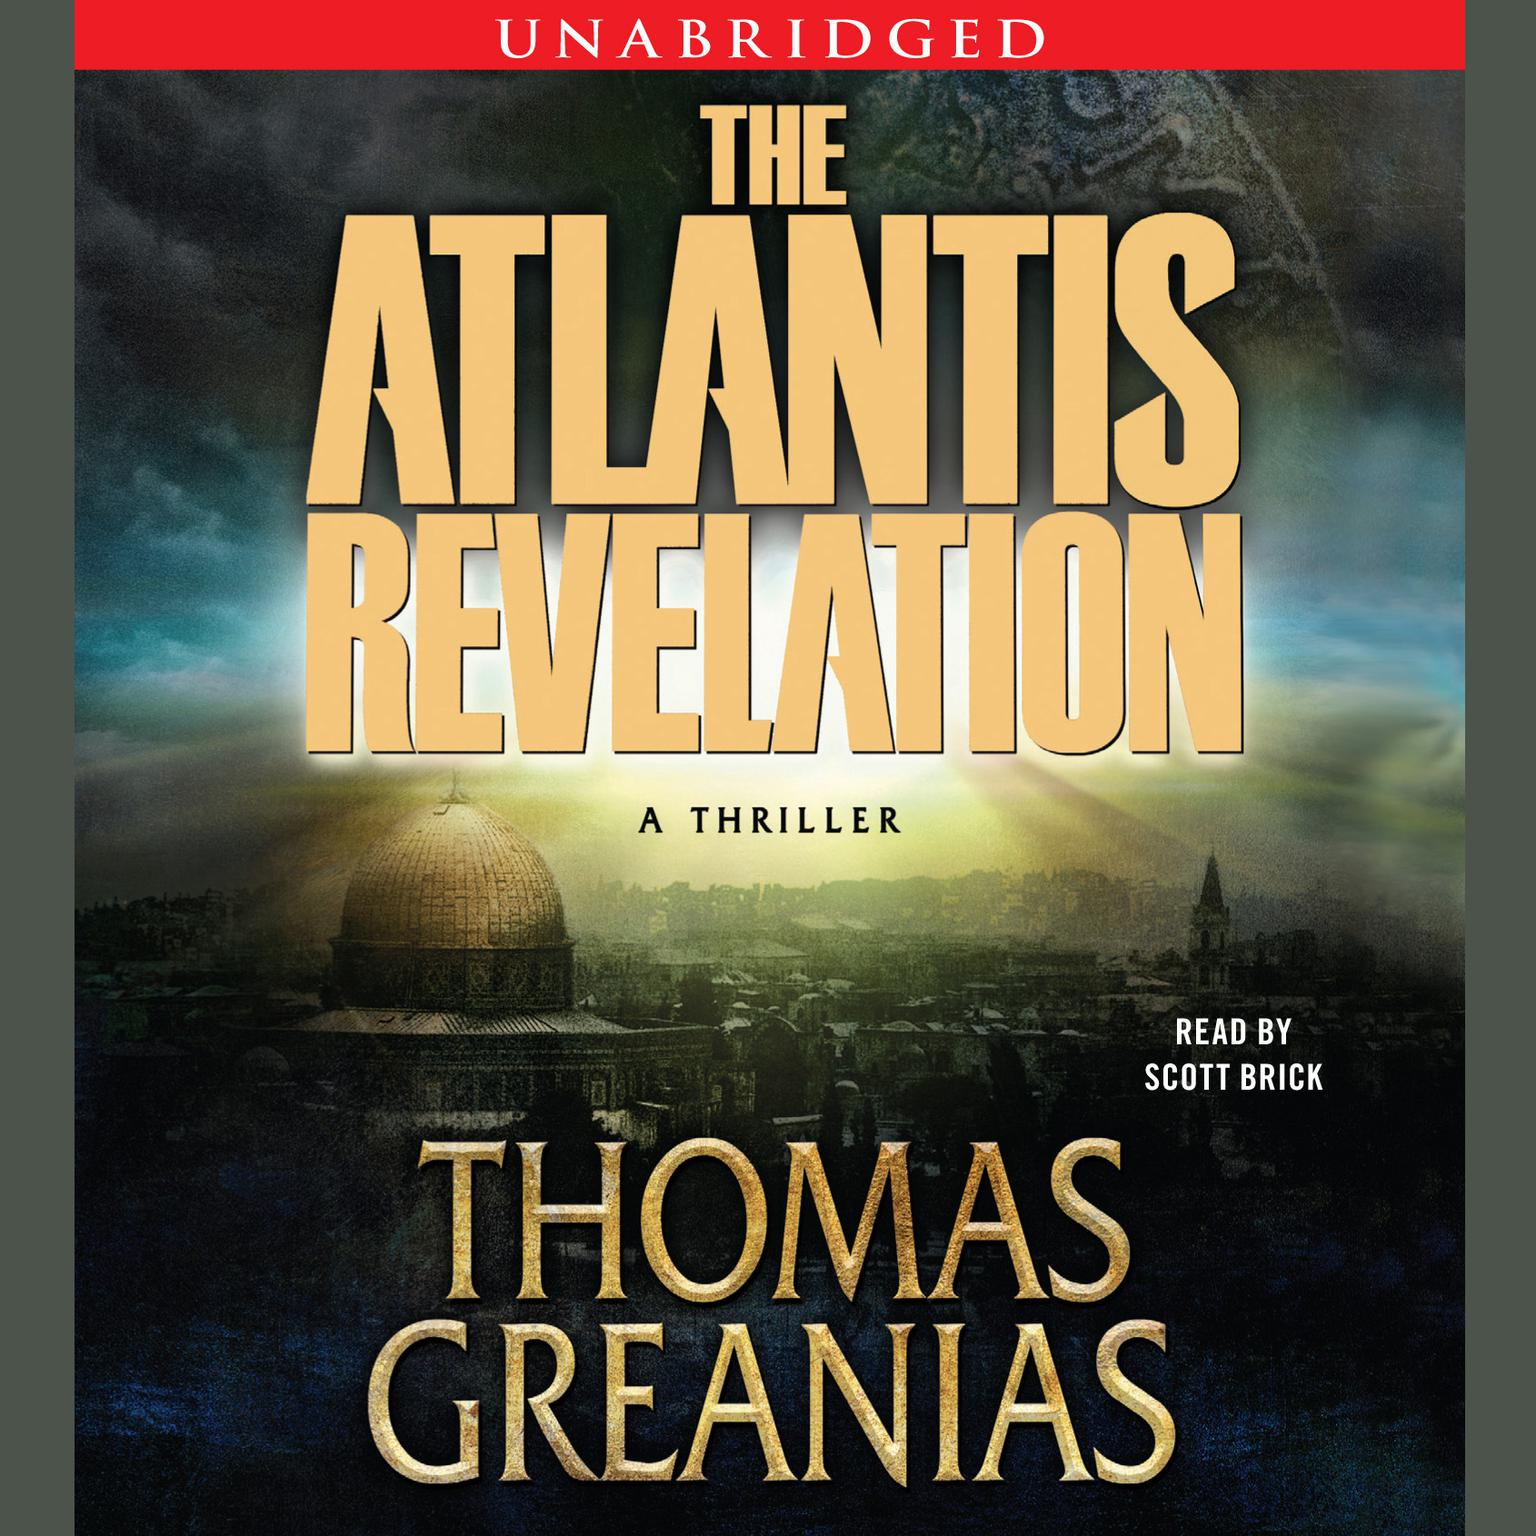 Printable The Atlantis Revelation Audiobook Cover Art